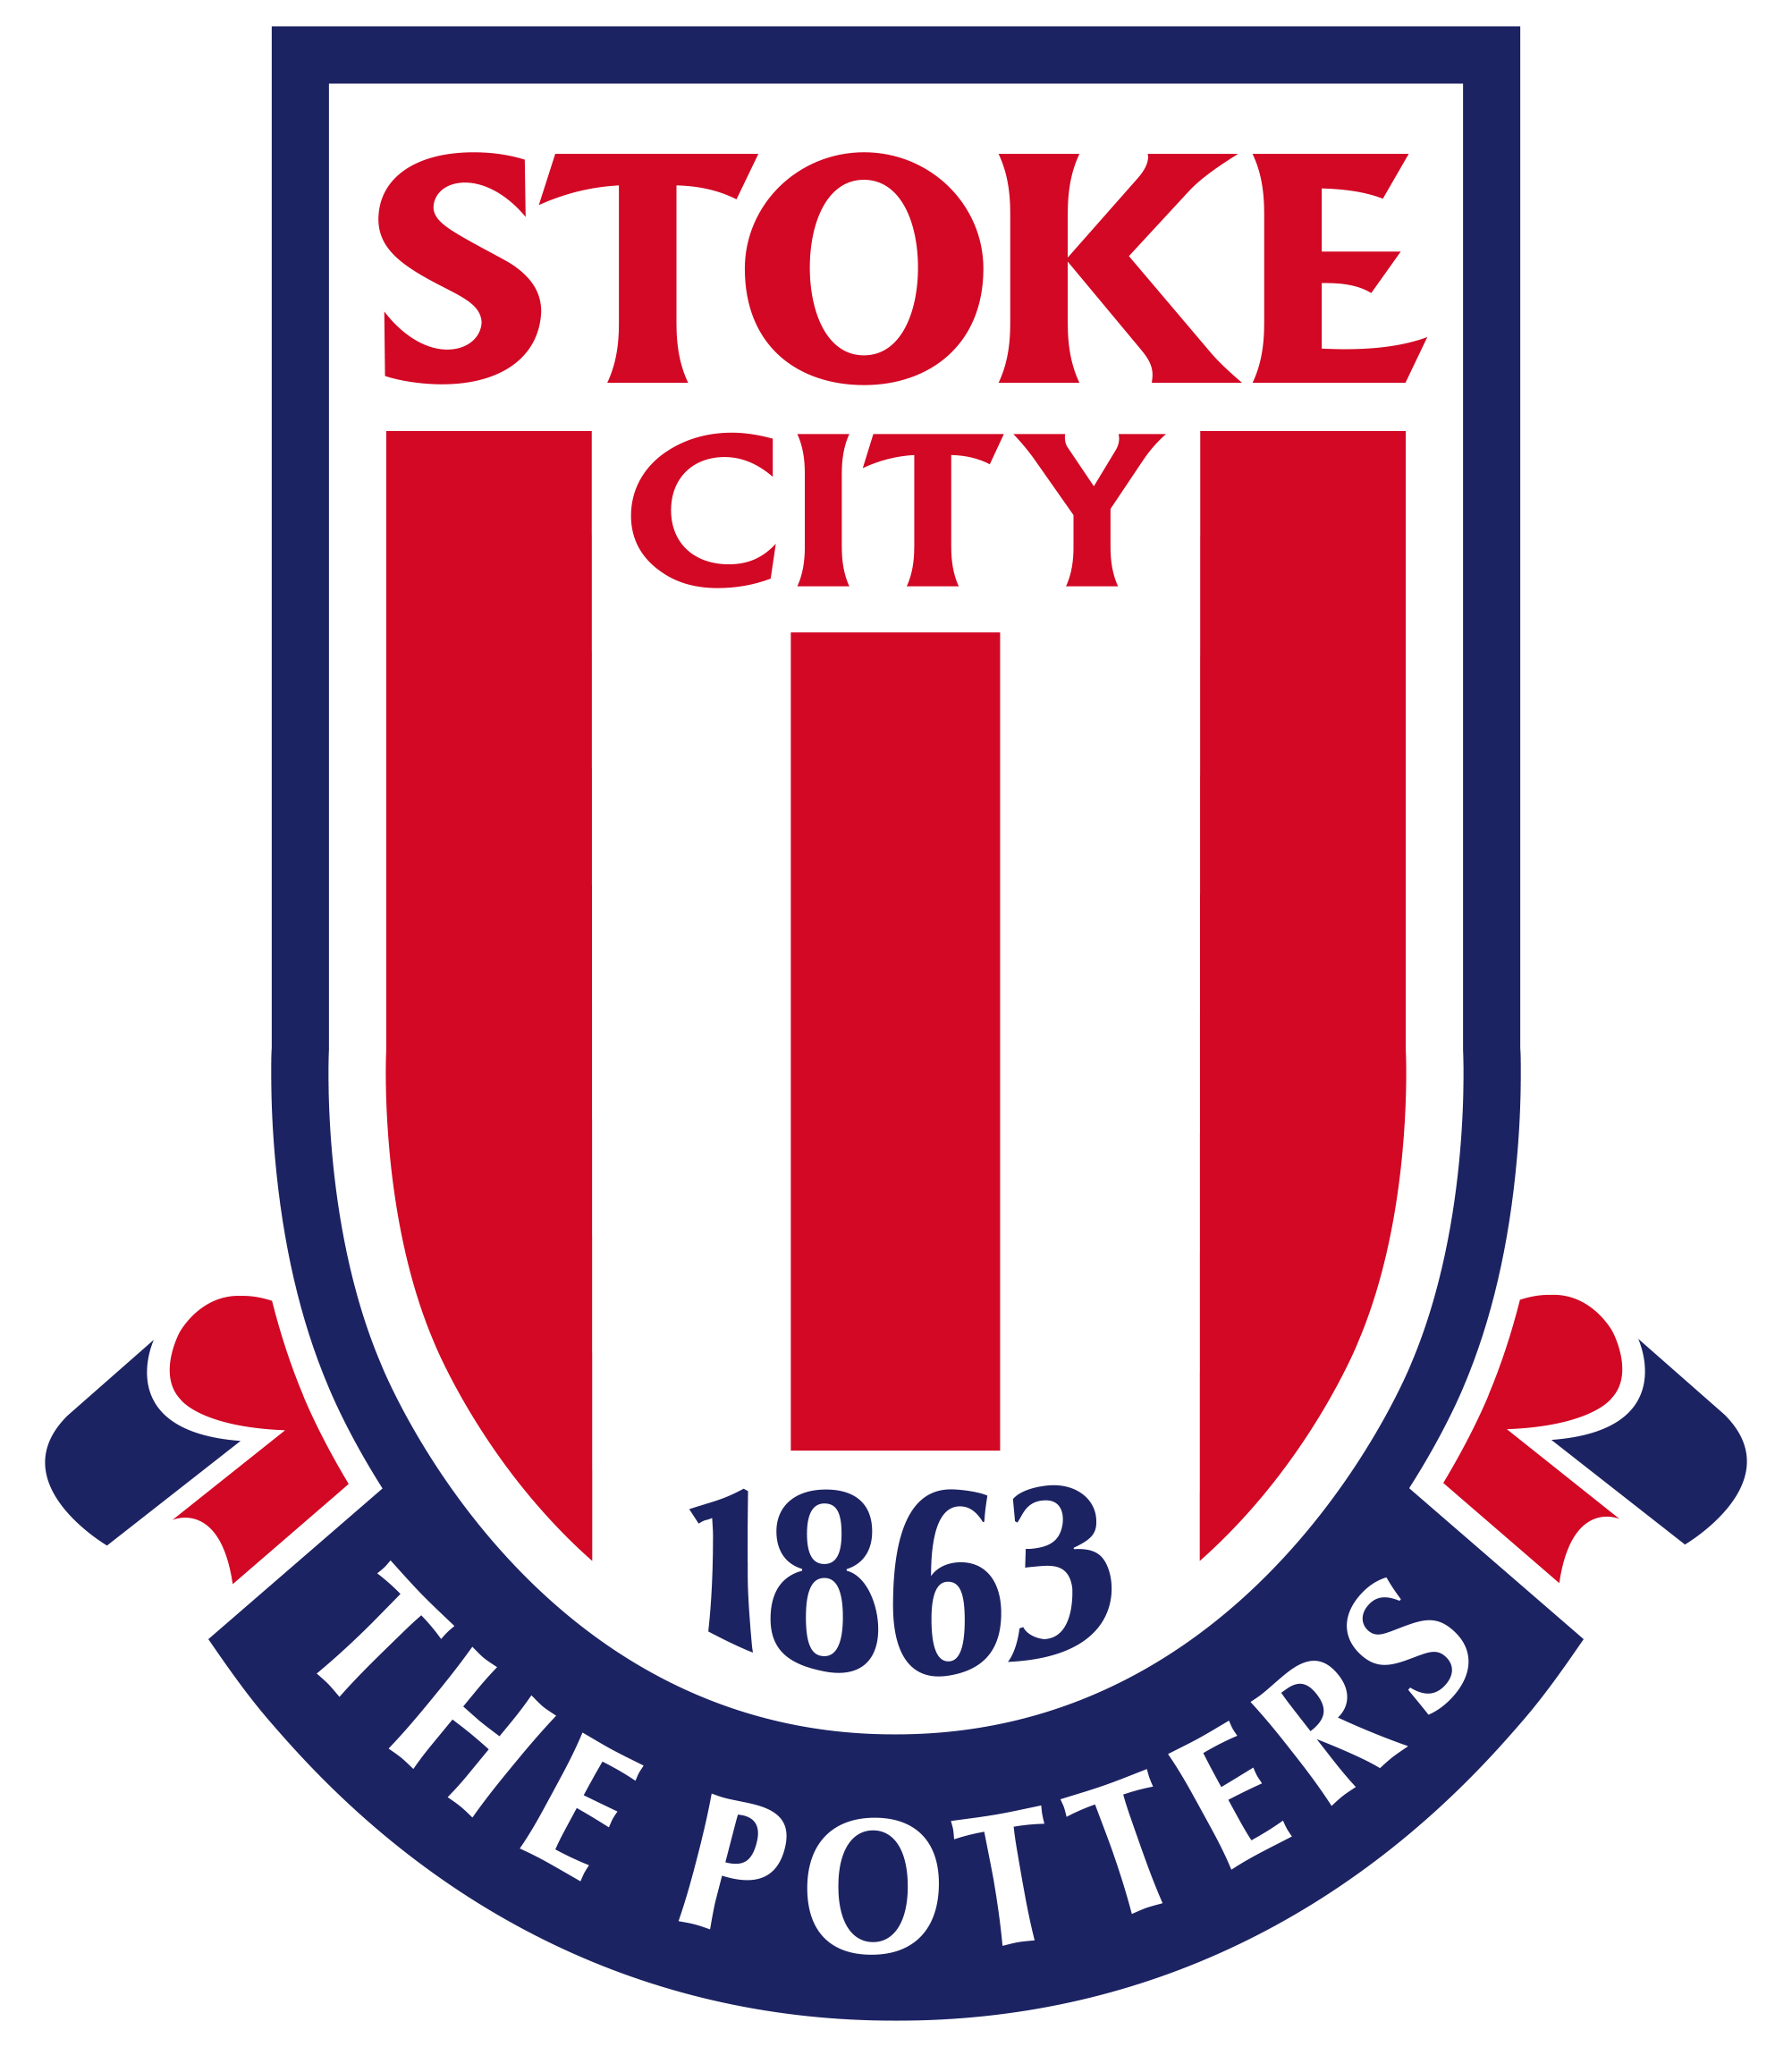 Stoke City Football Club Limited